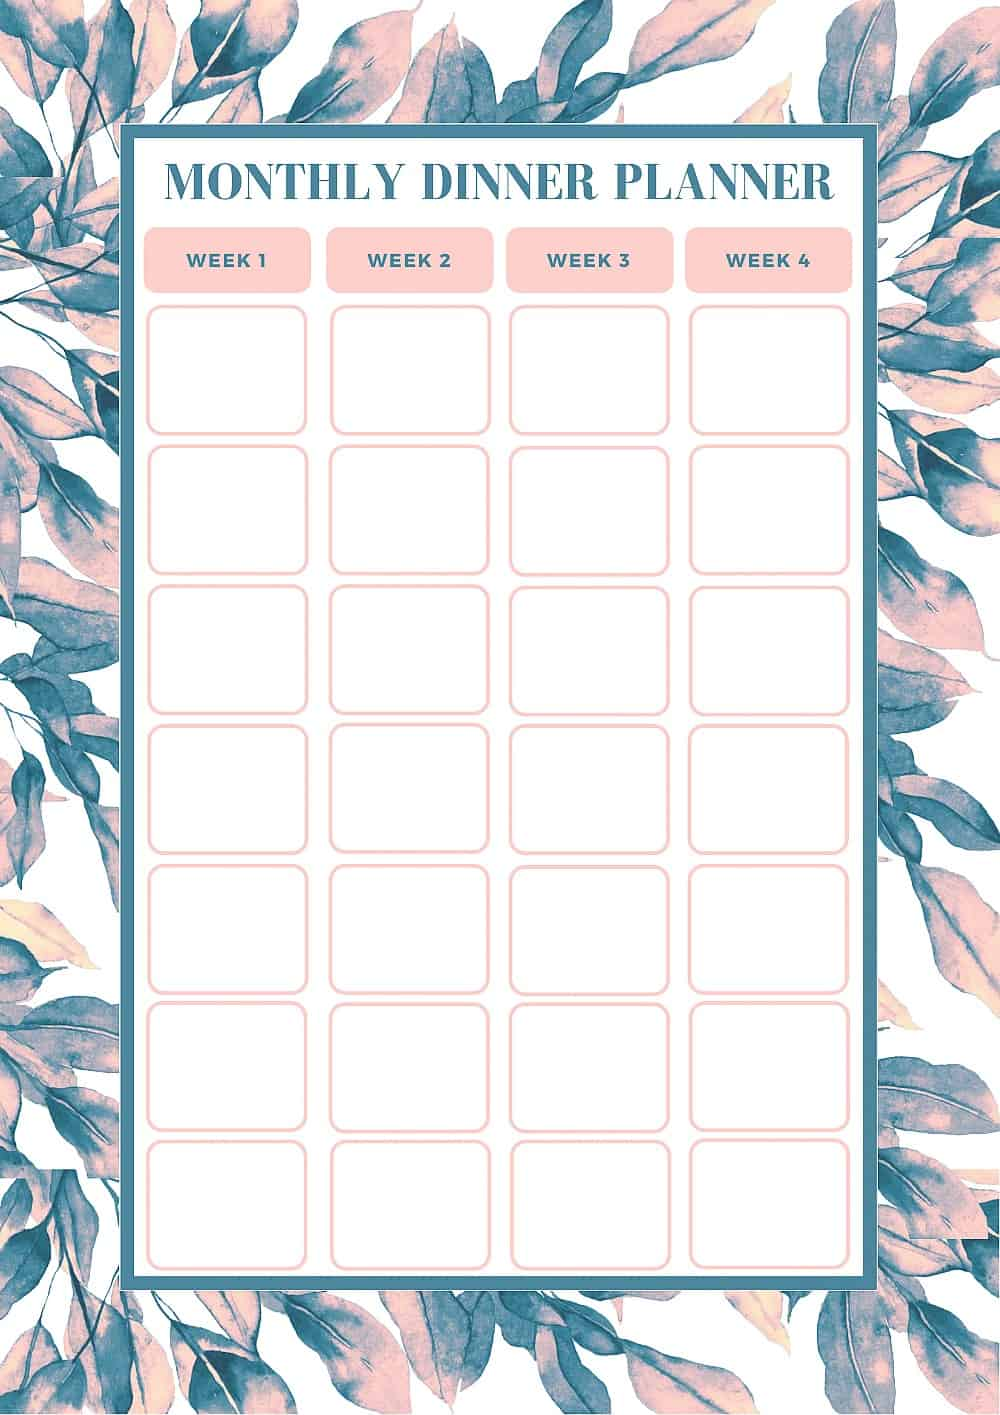 Free monthly meal planning template bake play smile for Monthly dinner calendar template